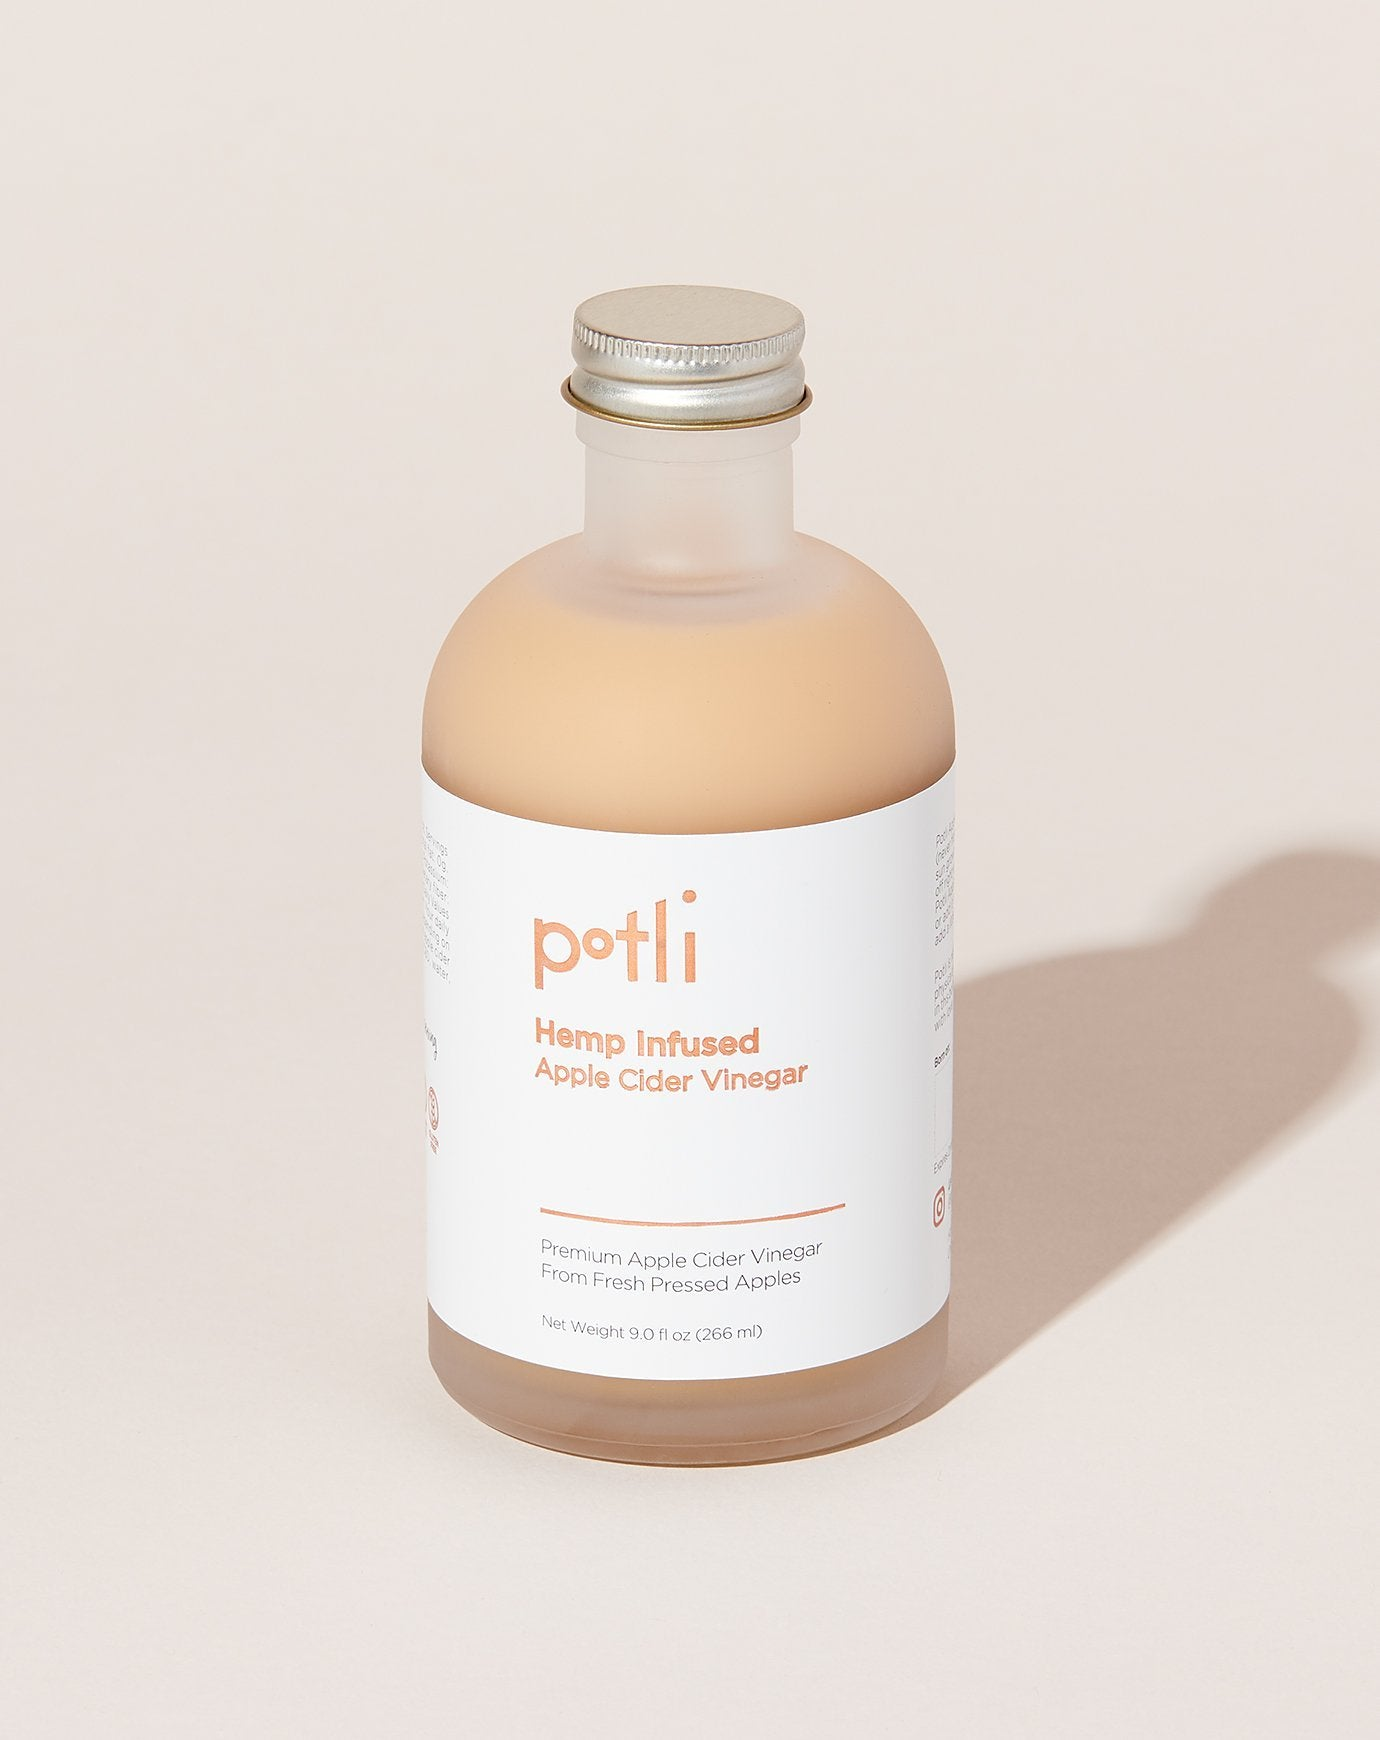 Potli's apple cider vinegar in a 9 oz frosted glass bottle